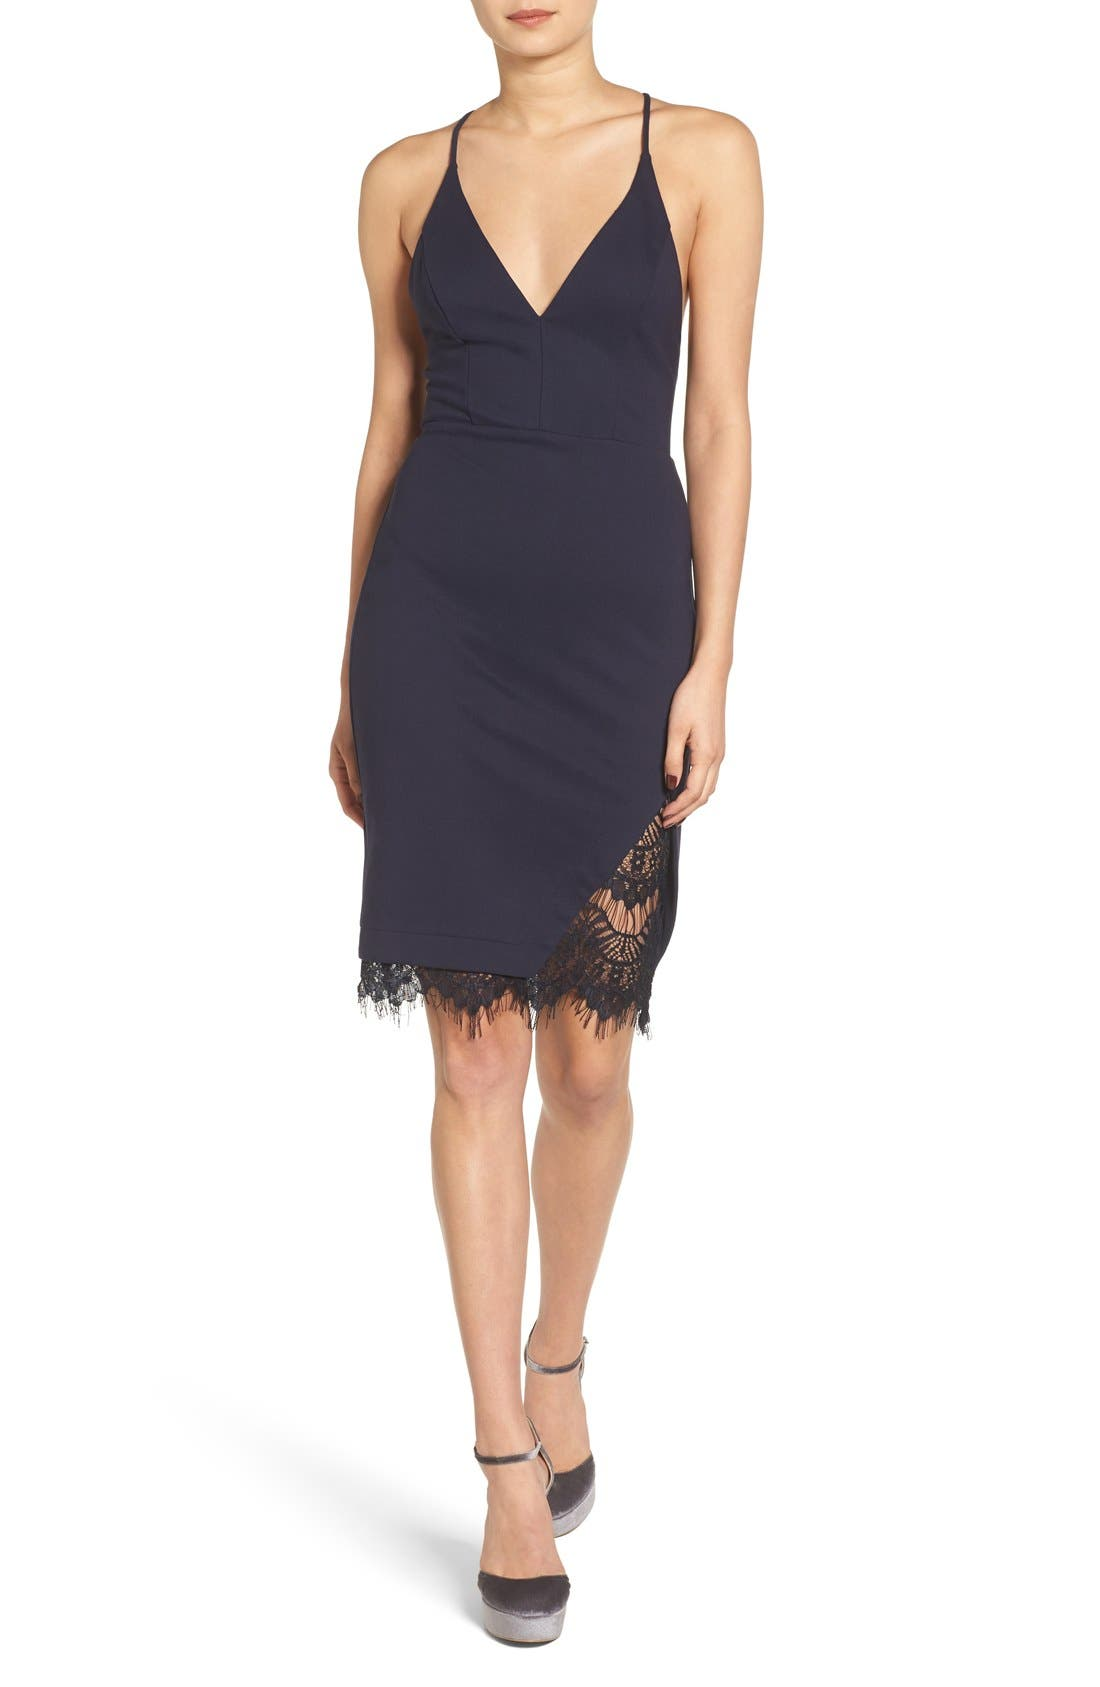 Alternate Image 1 Selected - ASTR the Label Lace Body-Con Dress